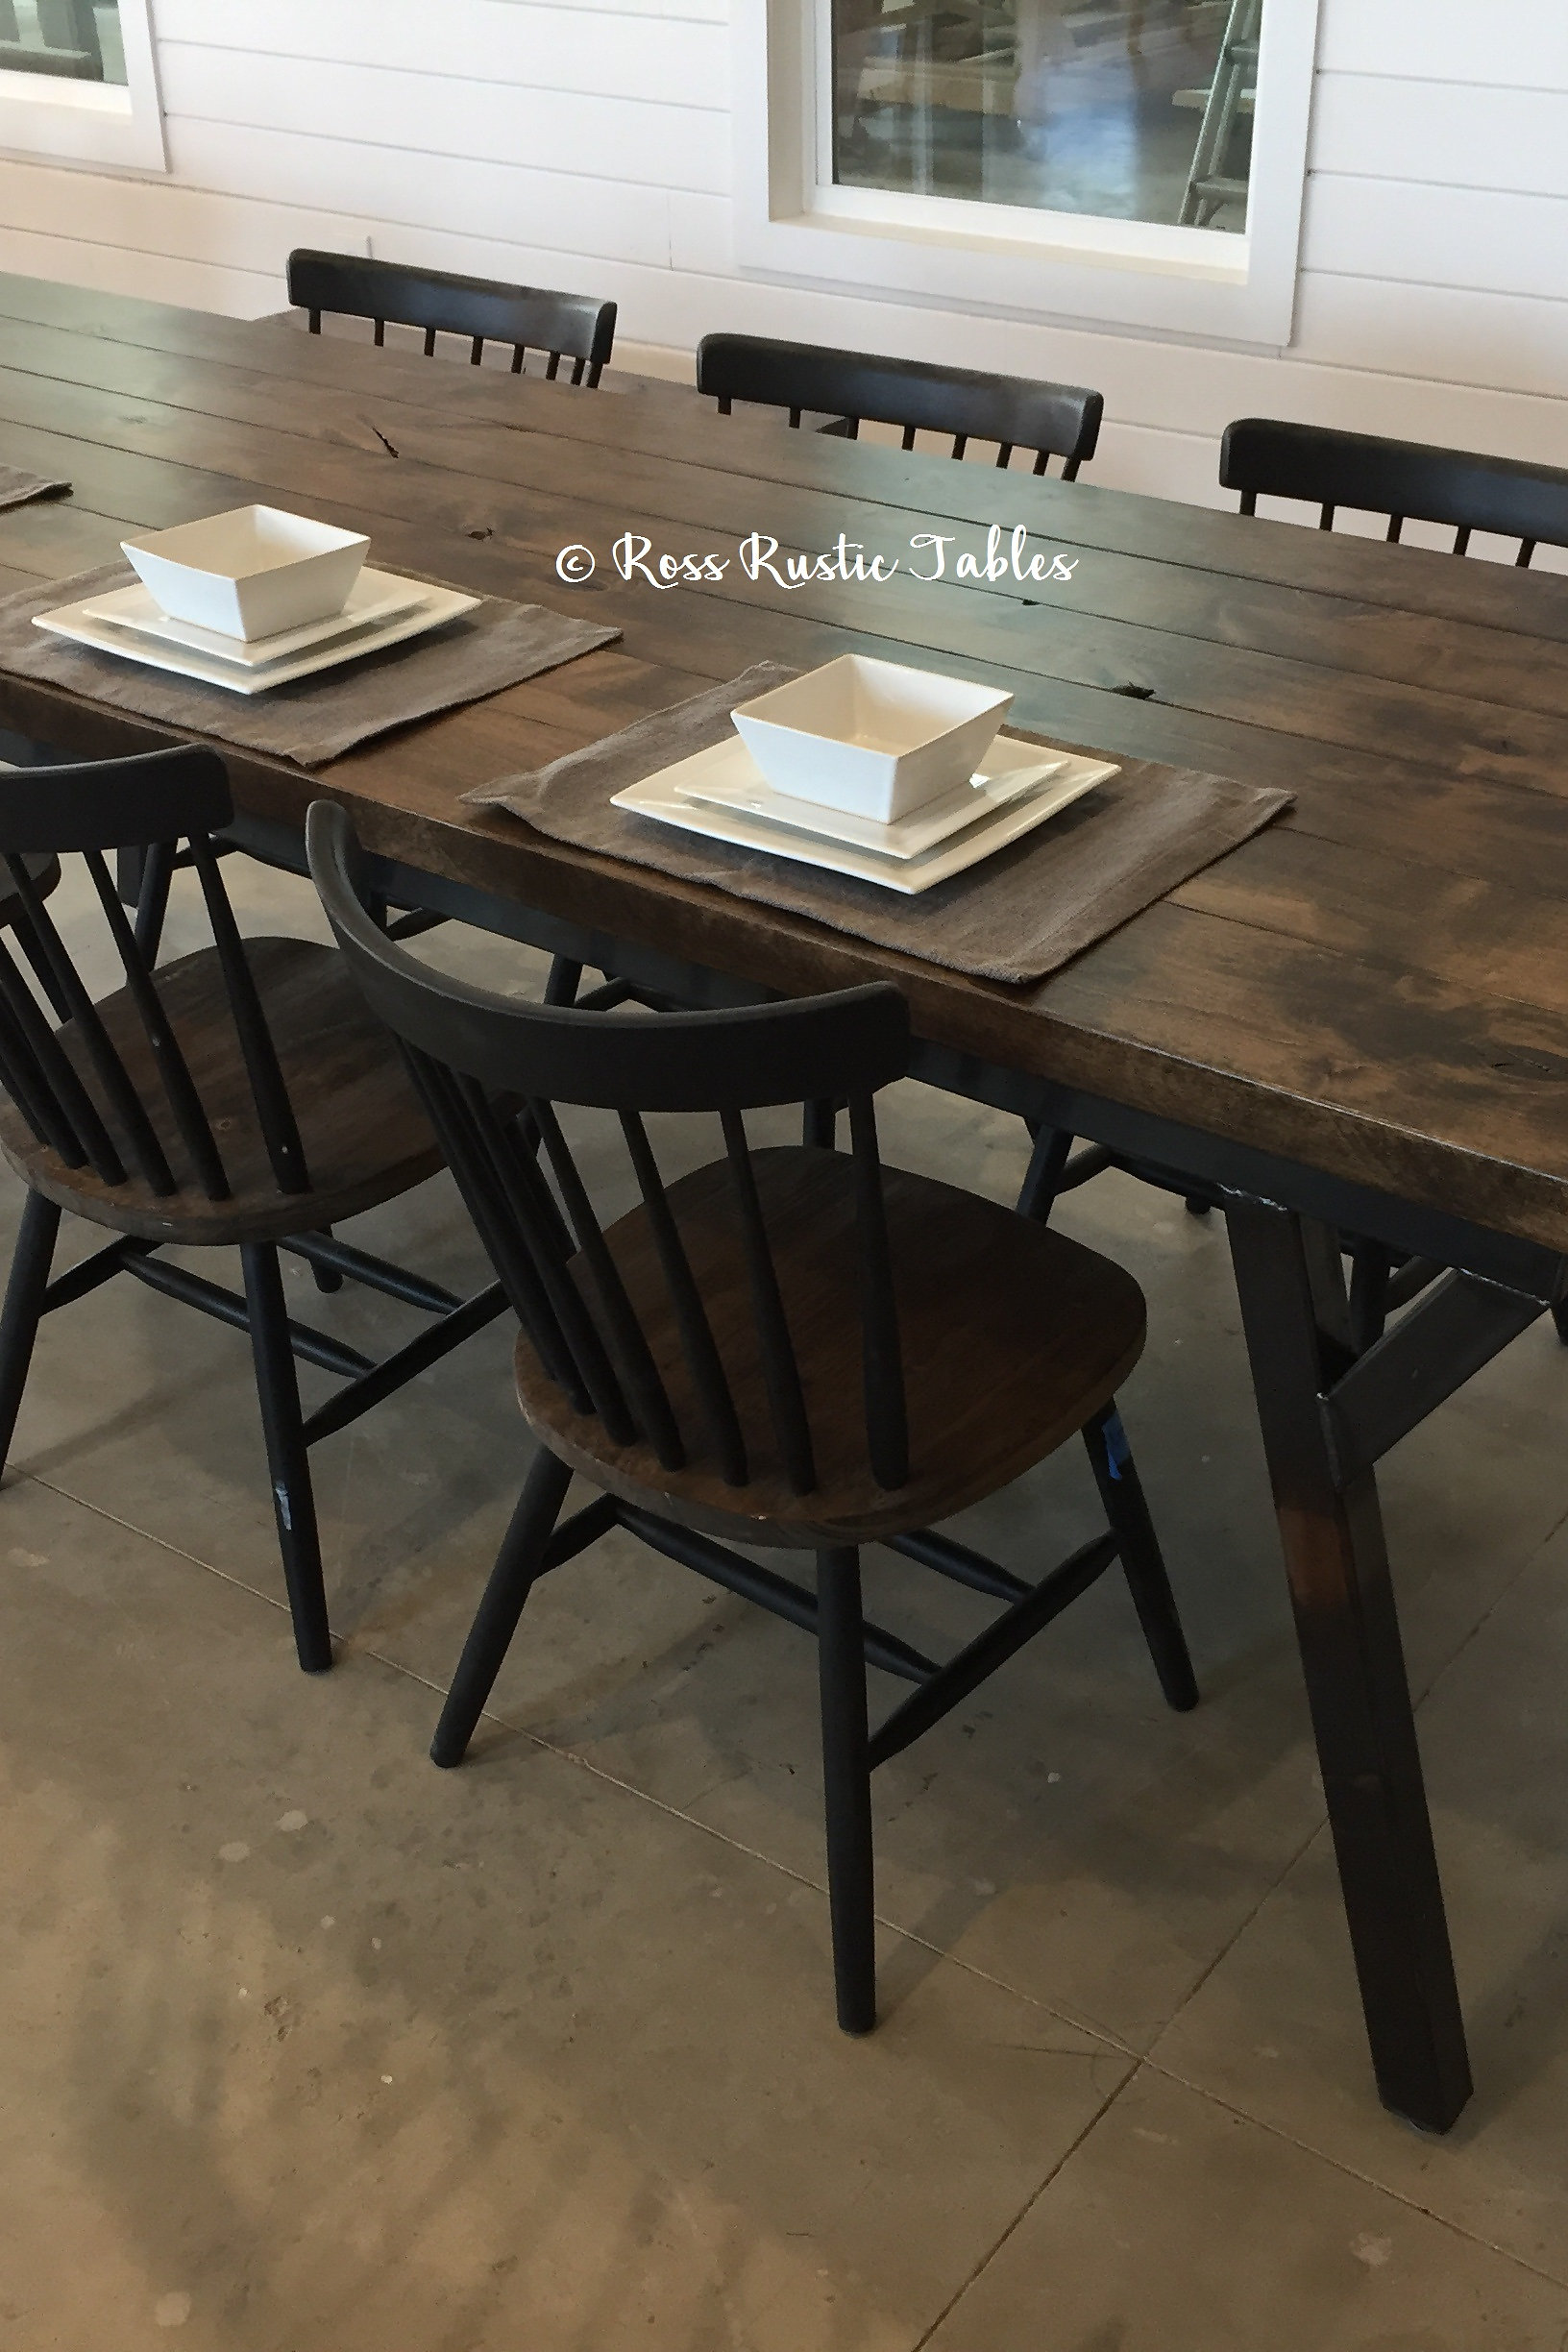 ... Table Is A Perfect Blend Of Rustic U0026 Modern! This Table Is Funky, While  Still Being Beautiful And Great For Any Style Home. At Ross Rustic Tables  ...